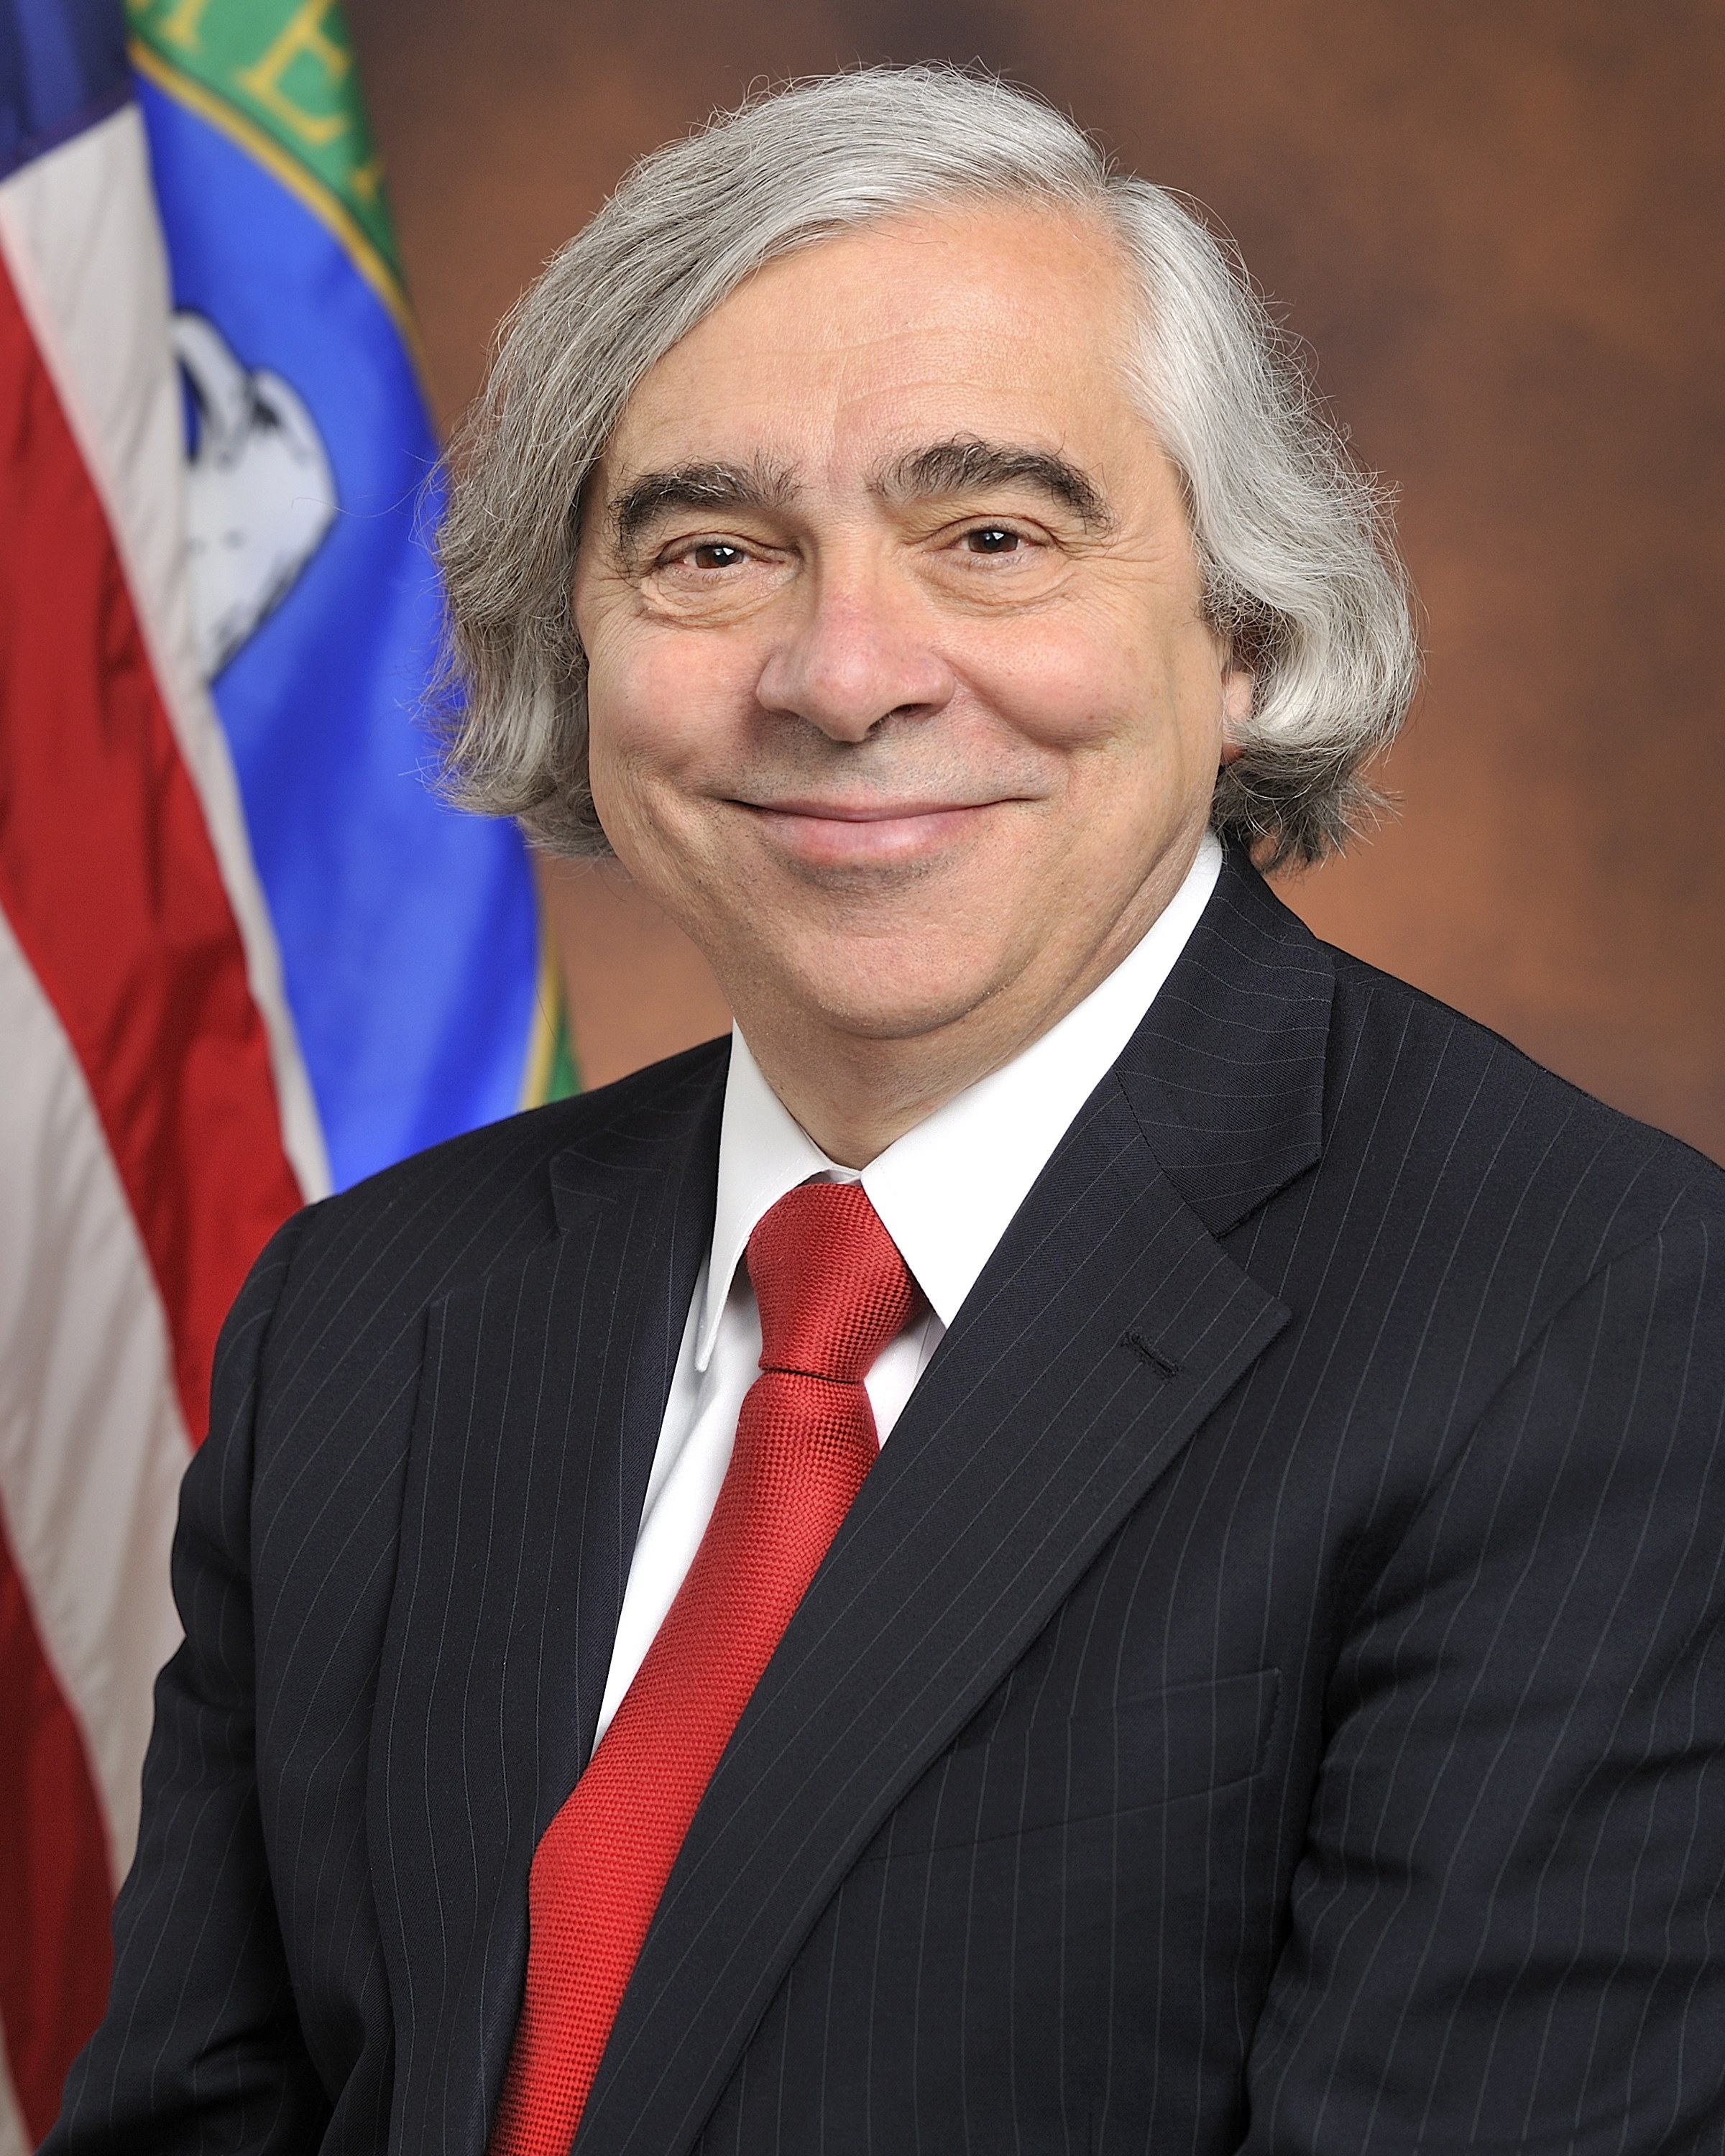 U.S. Secretary of Energy, Earnest Moniz